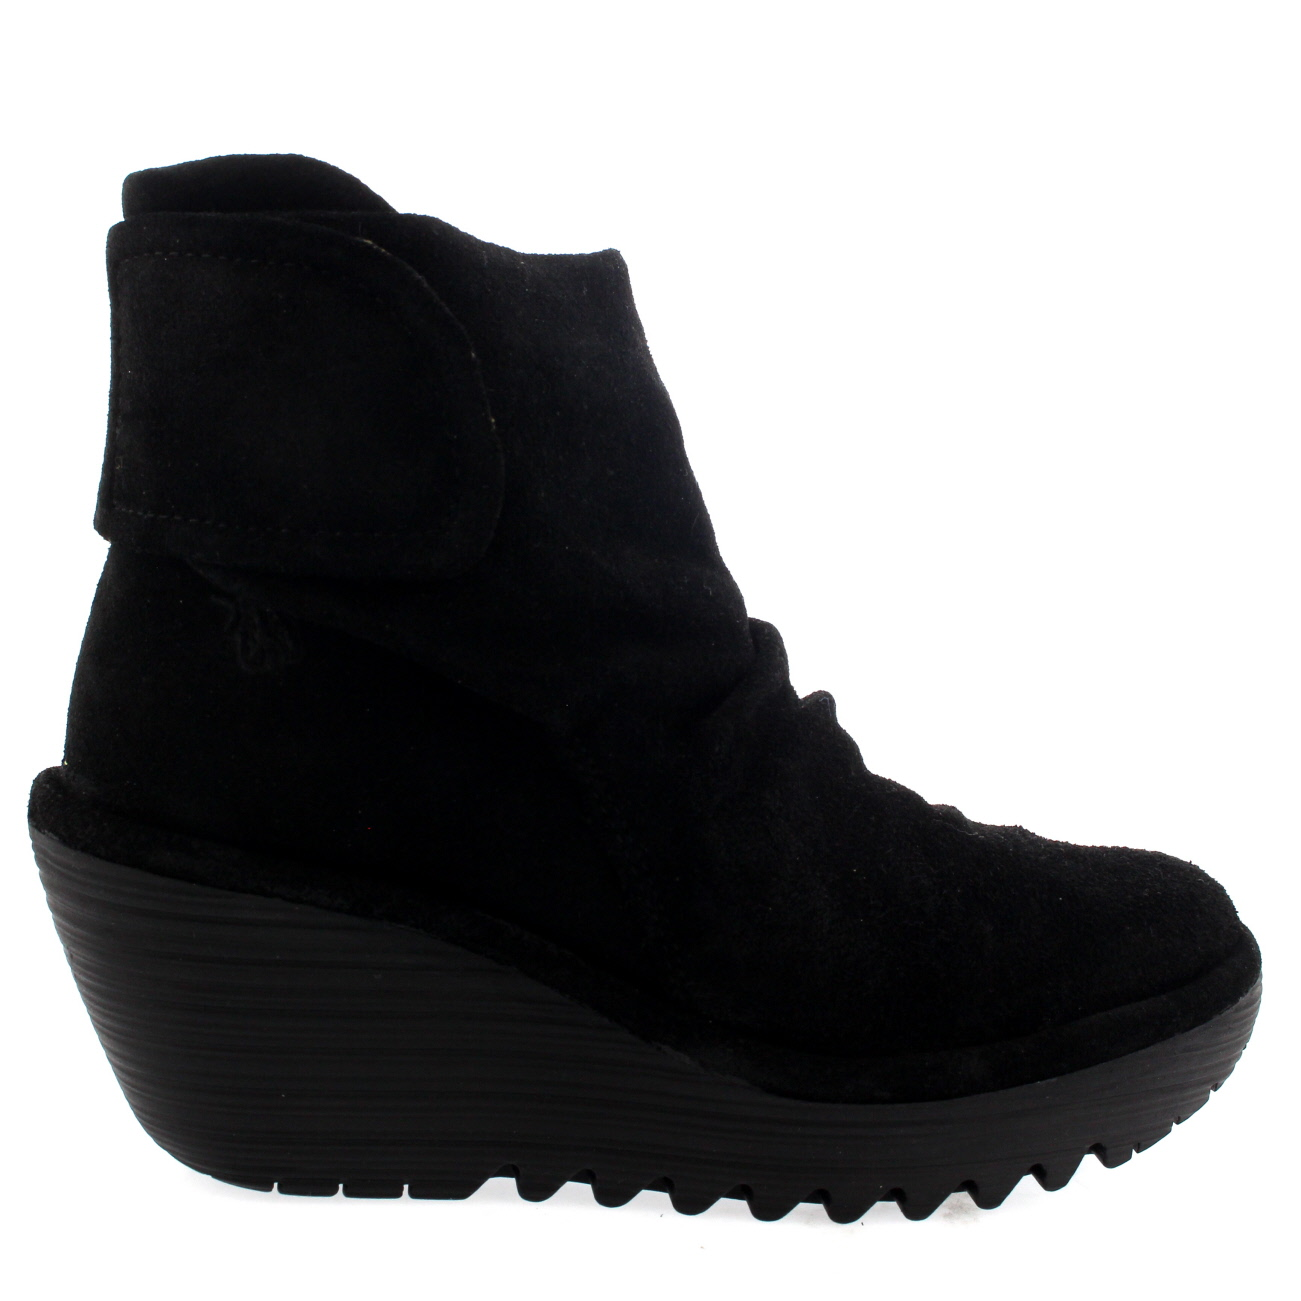 Ladies Fly London Yegi Snow Casual Wedge Shoes Winter Low Heel Boots All Sizes